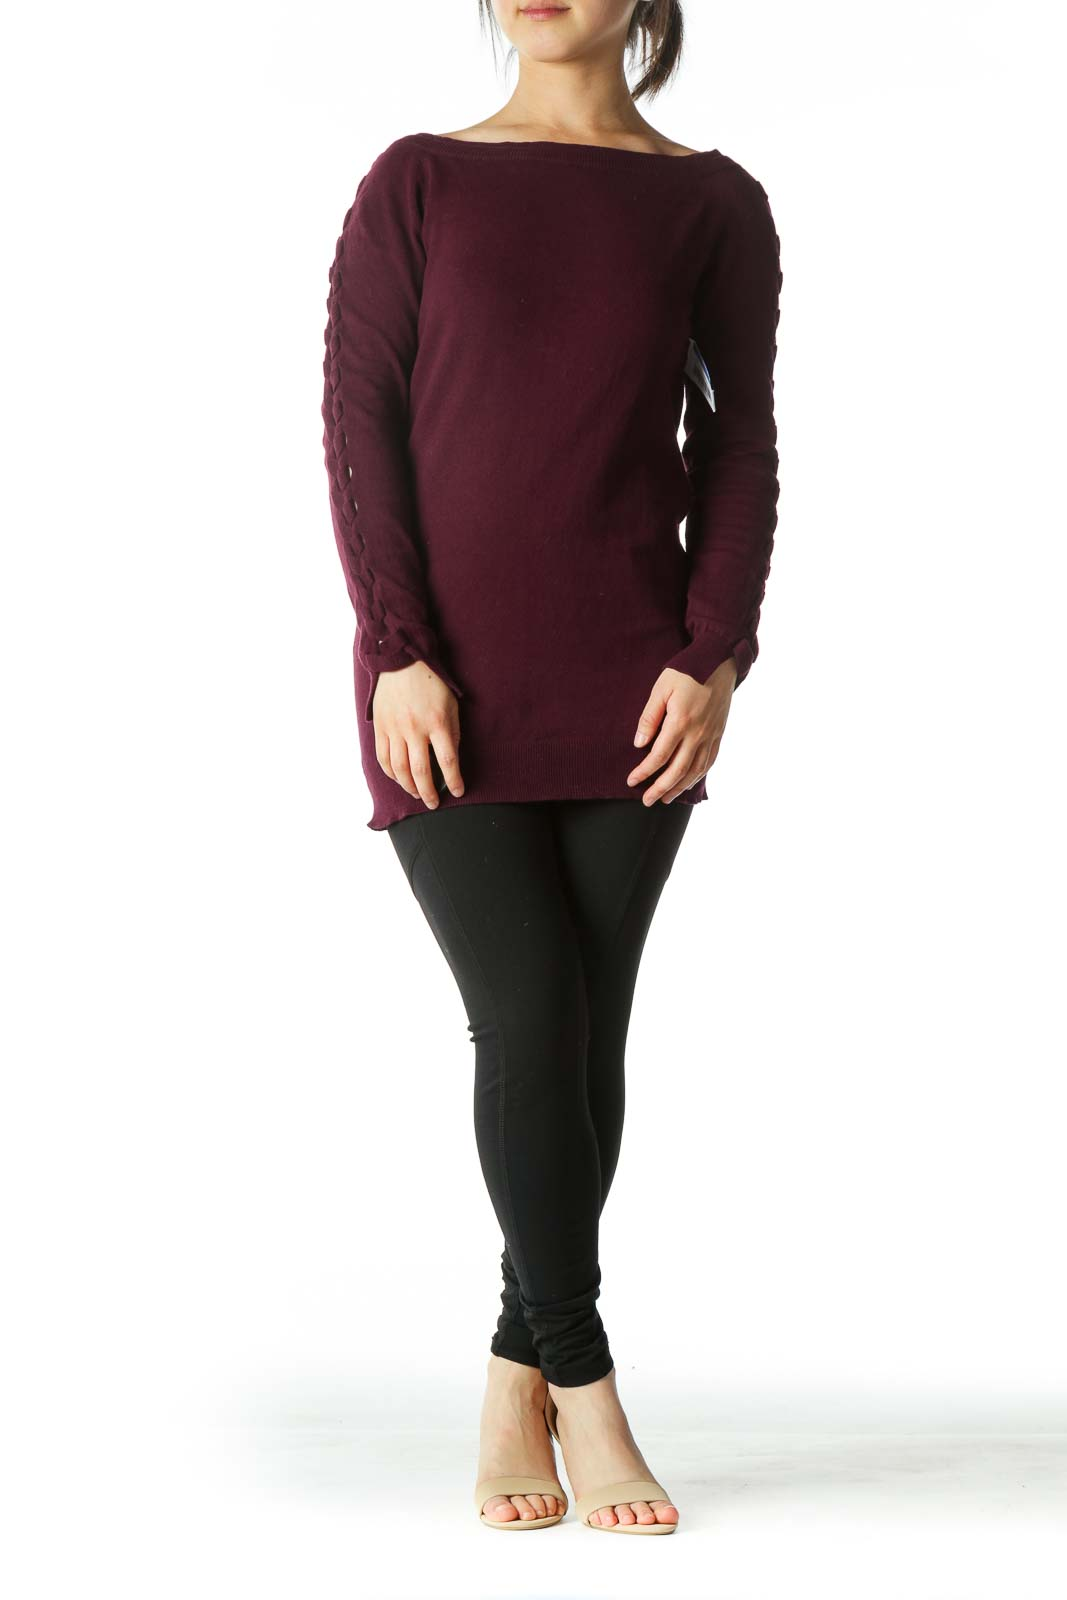 Deep Burgundy Crocheted-Sleeve Boat-Neck Sweater